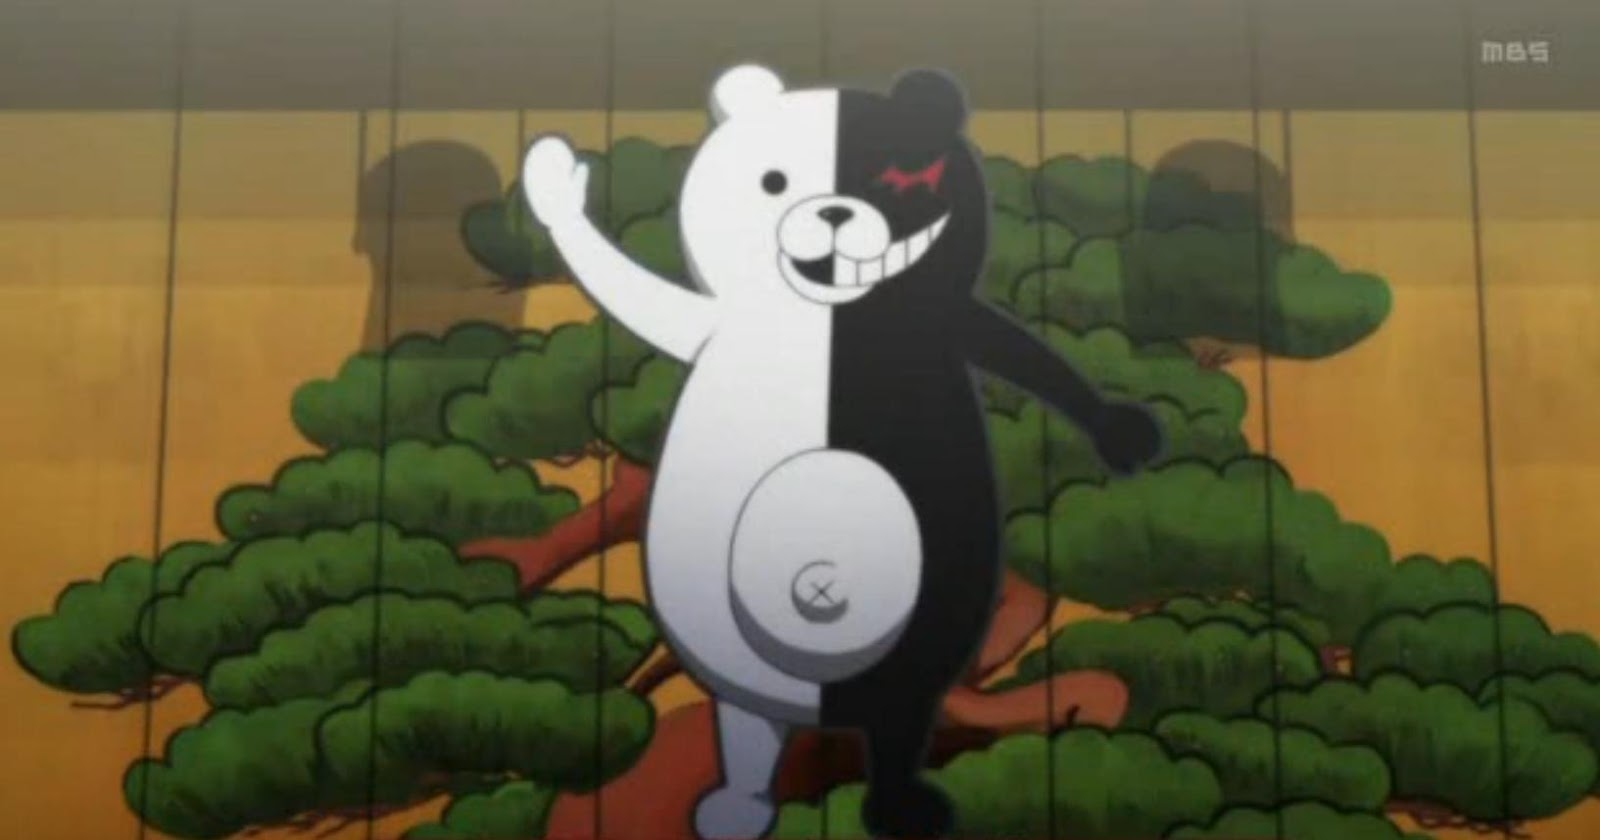 danganronpa the animation screenshot 2